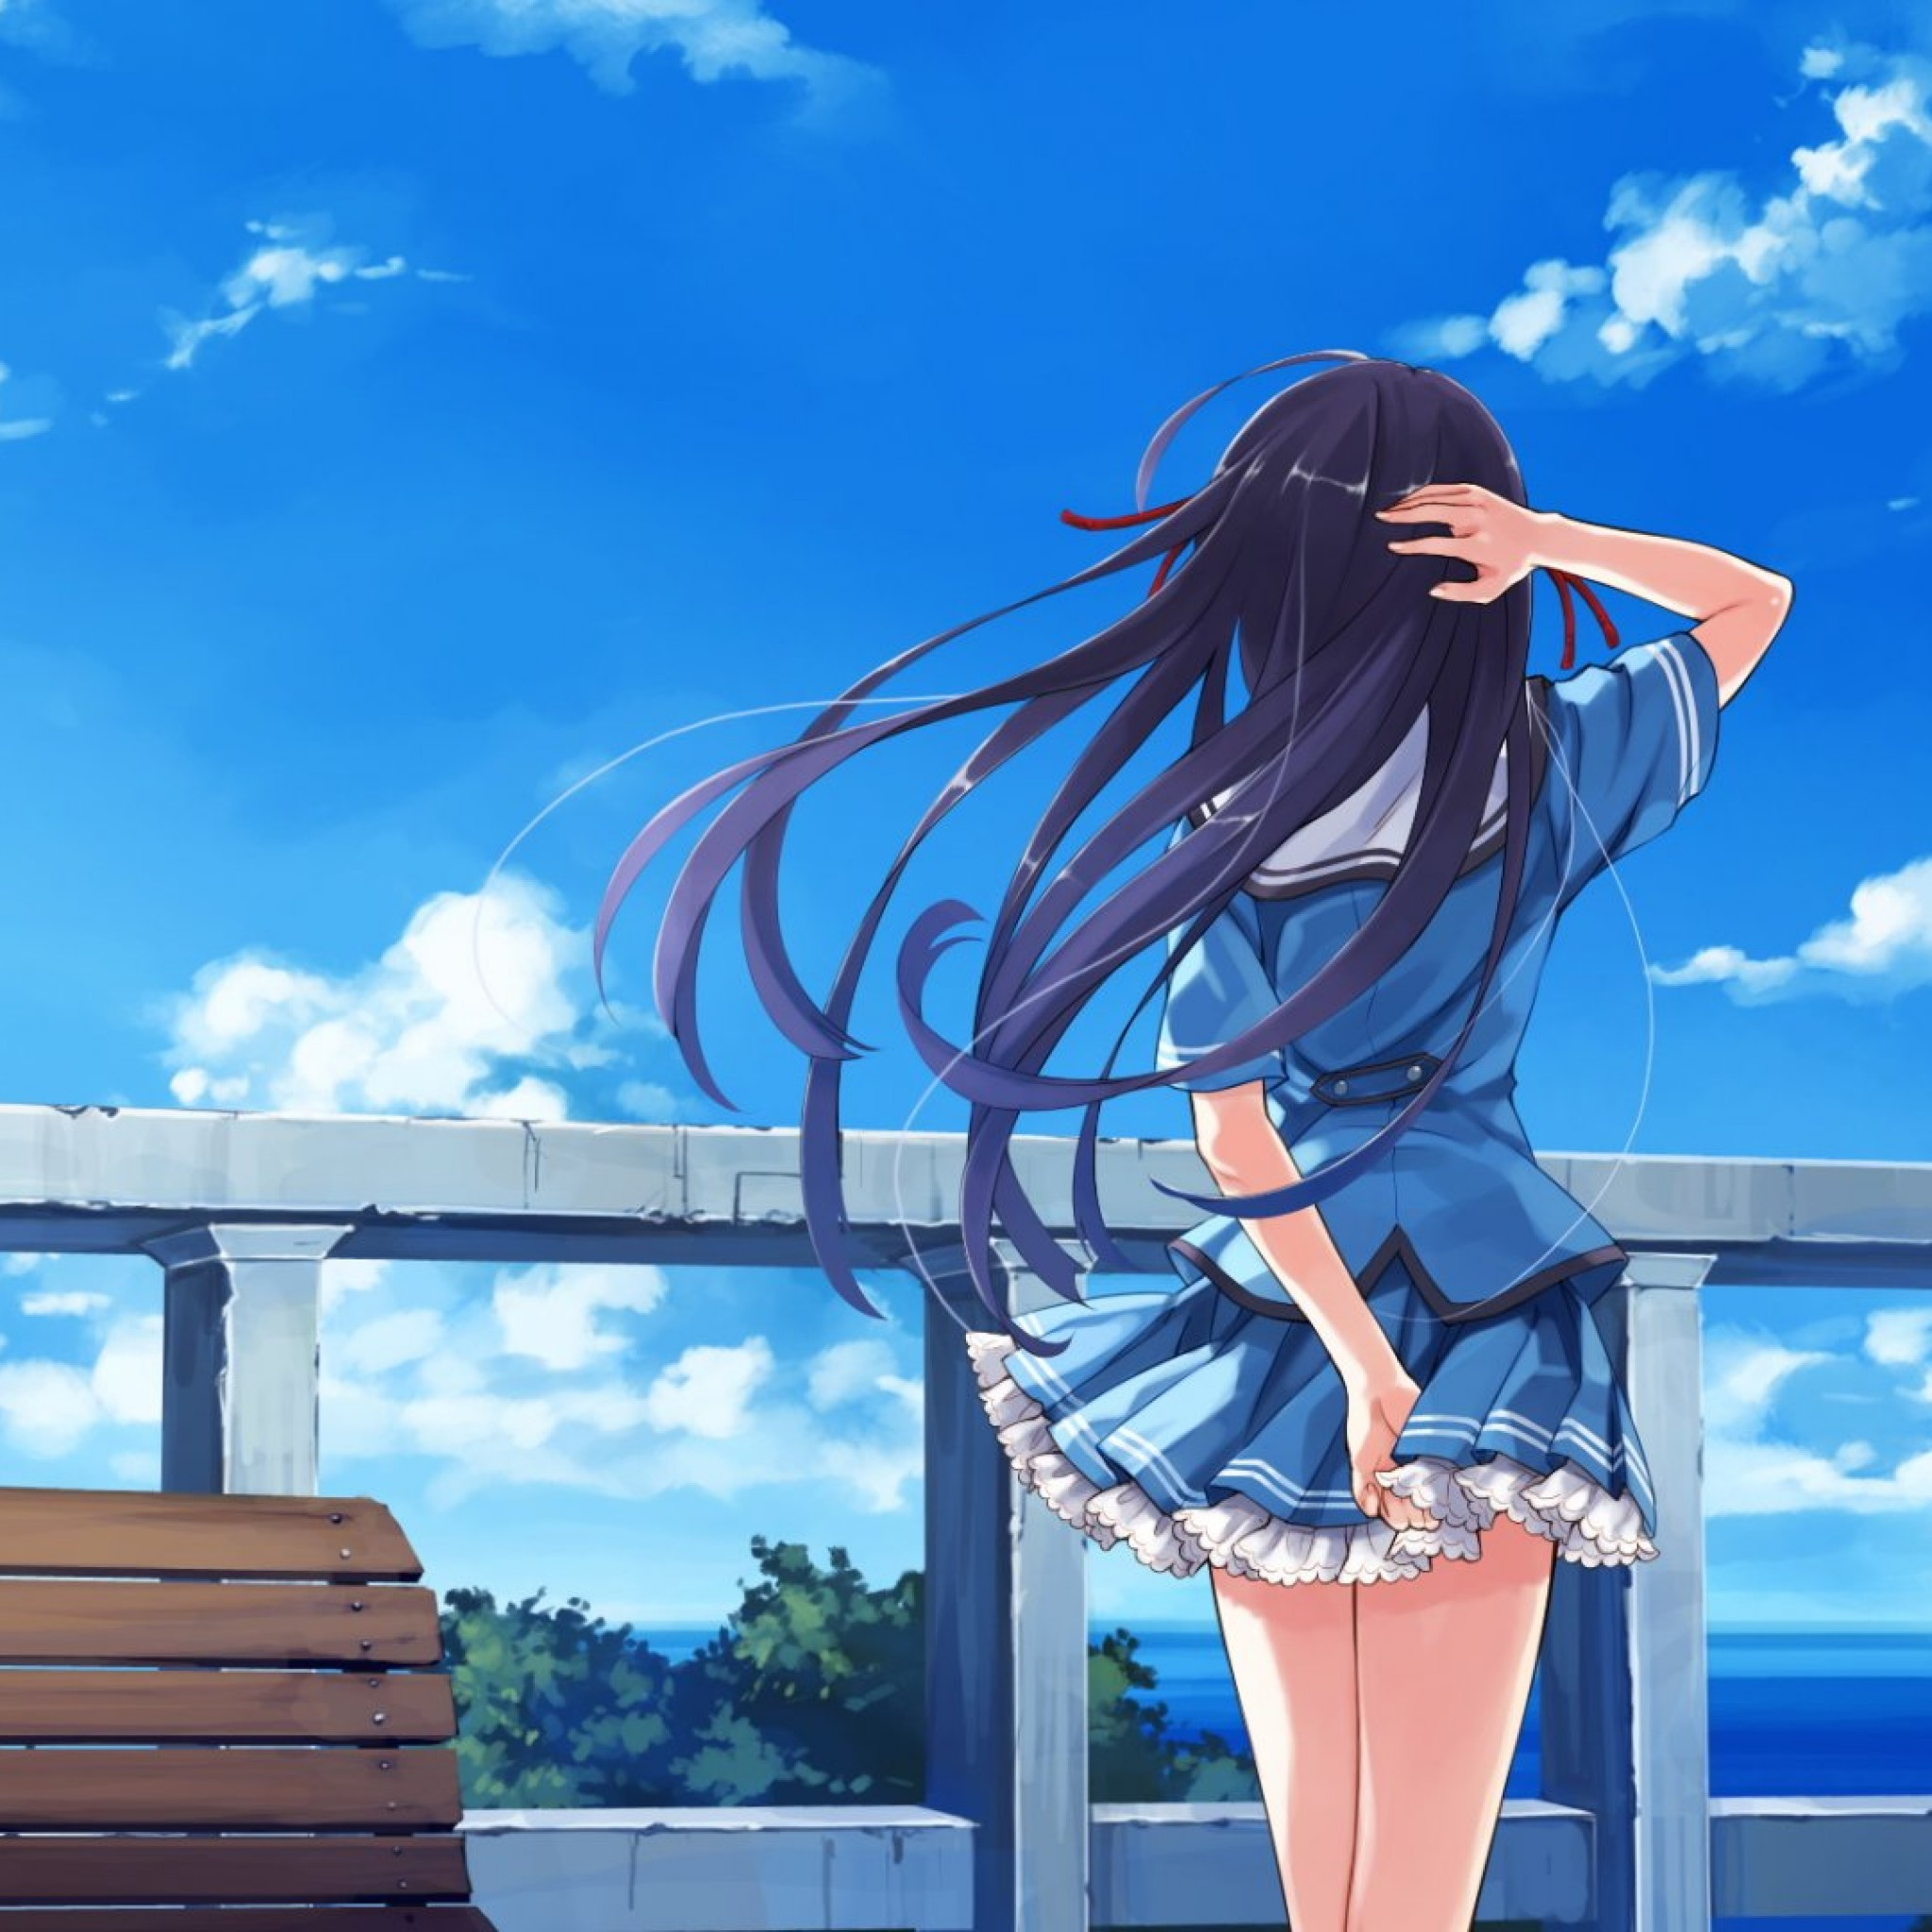 Free Download Anime Hd Computer Wallpaper 0001 Wallpapers Shop